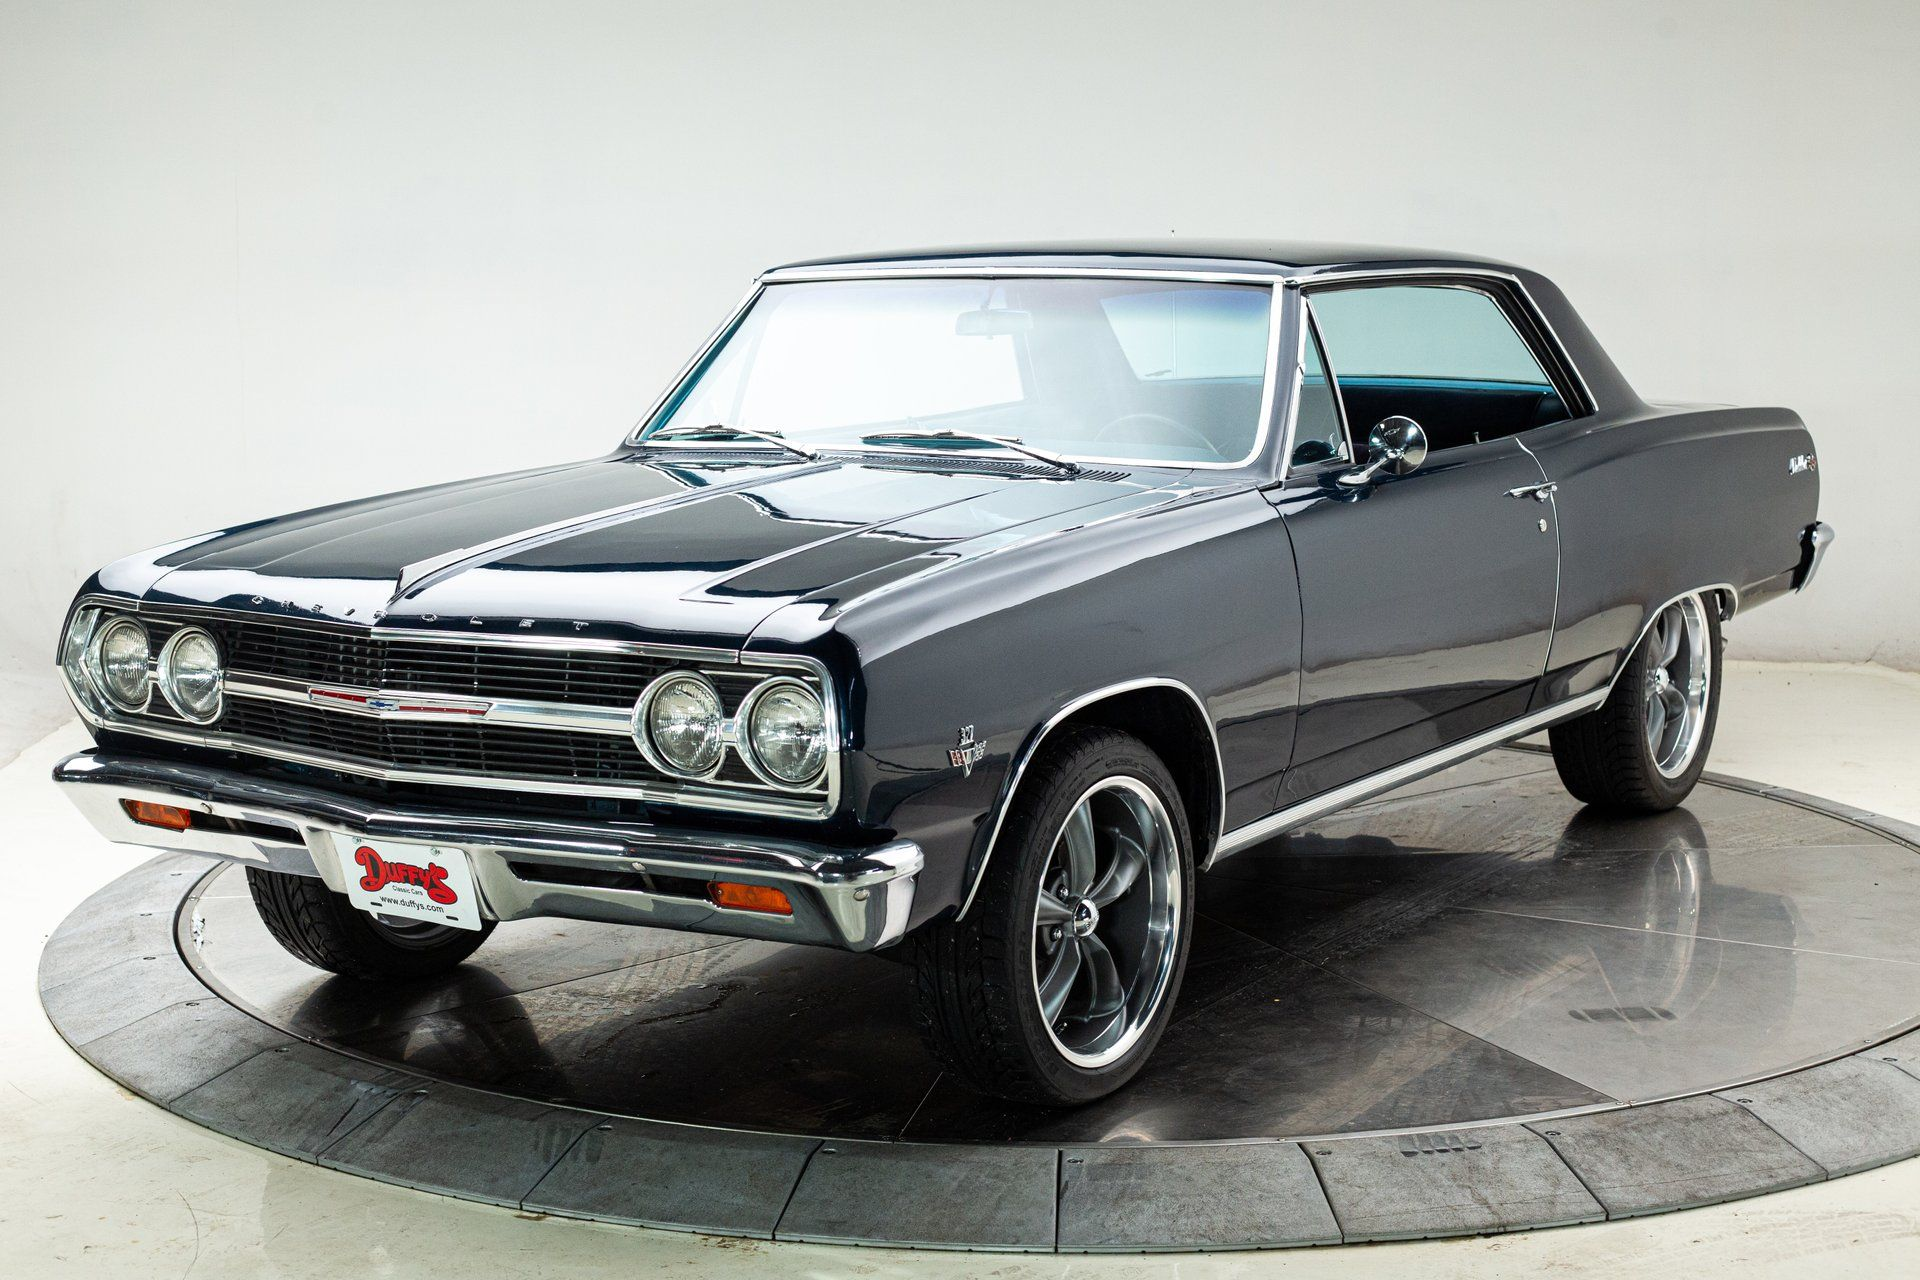 1970 Chevrolet Chevelle In 2020 Chevrolet Chevelle Chevelle For Sale Chevrolet